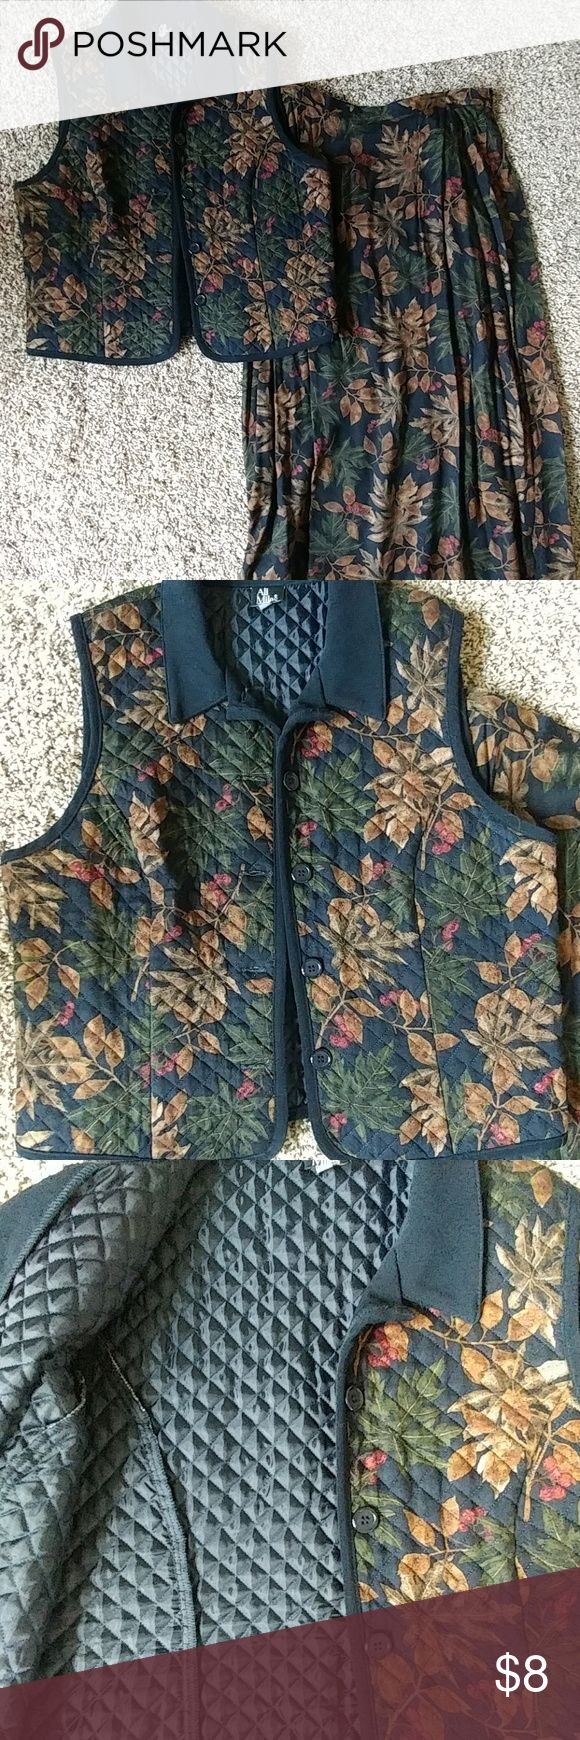 Gorgeous fall vest/ skirt set Beautiful fall colors and pattern adorn this set. 100% rayon size 12 petite, vest is quilted button up, skirt has back zipper side elastic panels, with slit, not lined. Hand wash instructions. Ali Miles Skirts Skirt Sets